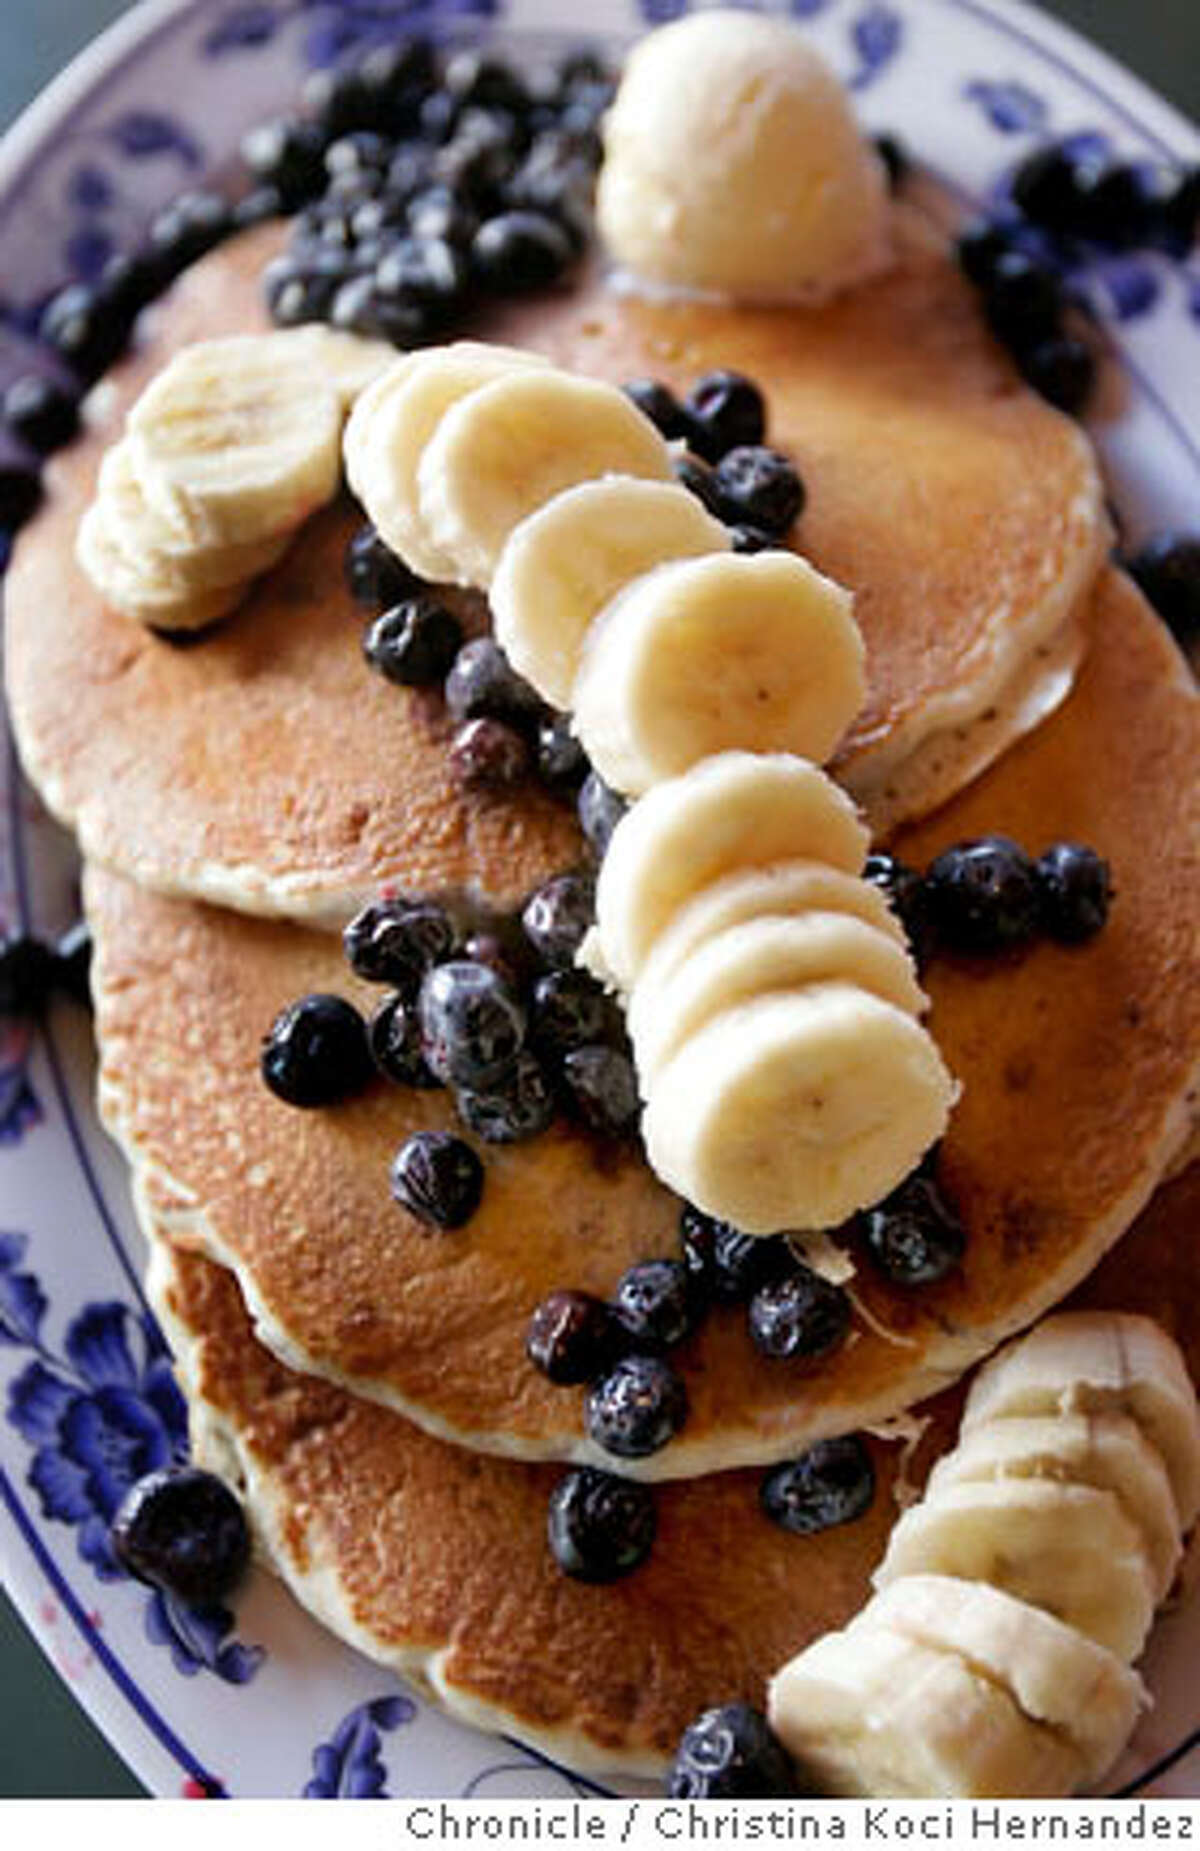 Full stack of pancakes with bananas and blueberries. Pork Store Cafe is the Bargain Bite to run in 96 Hours October 19.This is a good ol' American breakfast spot: If possible, try to go in the morning or on a weekend to get the feel of the crowd. Food-wise, a shot of something like the Santa Fe scramble or a stack of blueberry pancakes or a waffle with butter and syrup would do the trick. .(CHRISTINA KOCI HERNANDEZ/THE CHRONICLE)